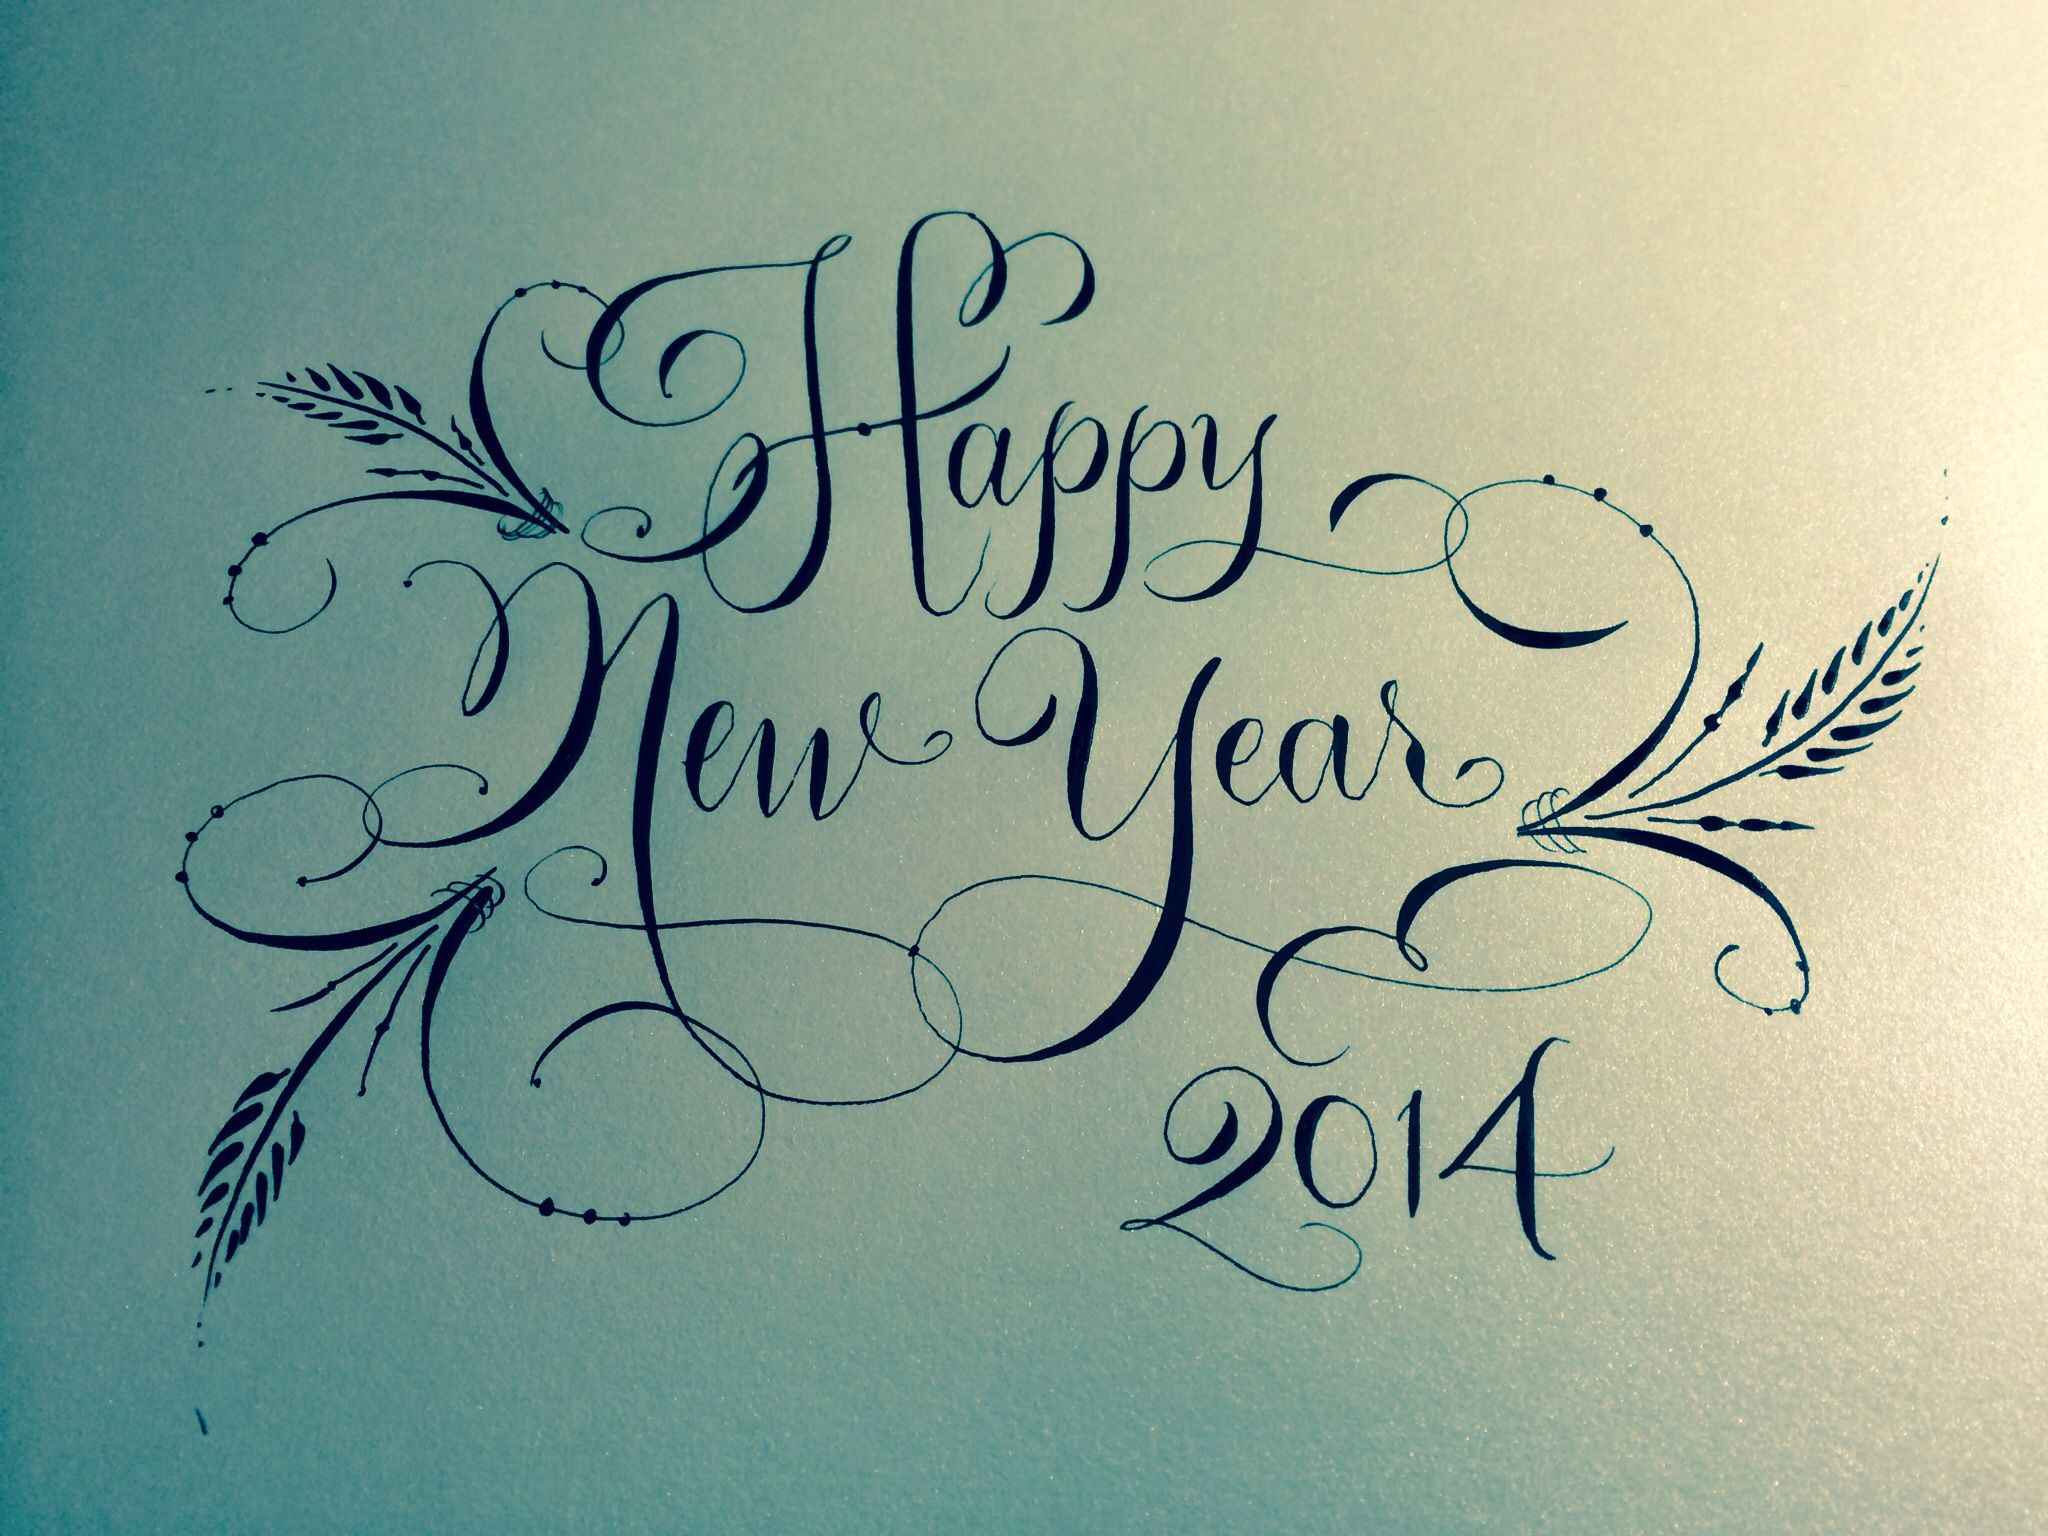 Happy New Year from The Blooming Quill   hand calligraphy   Debi s     Happy New Year from The Blooming Quill   hand calligraphy